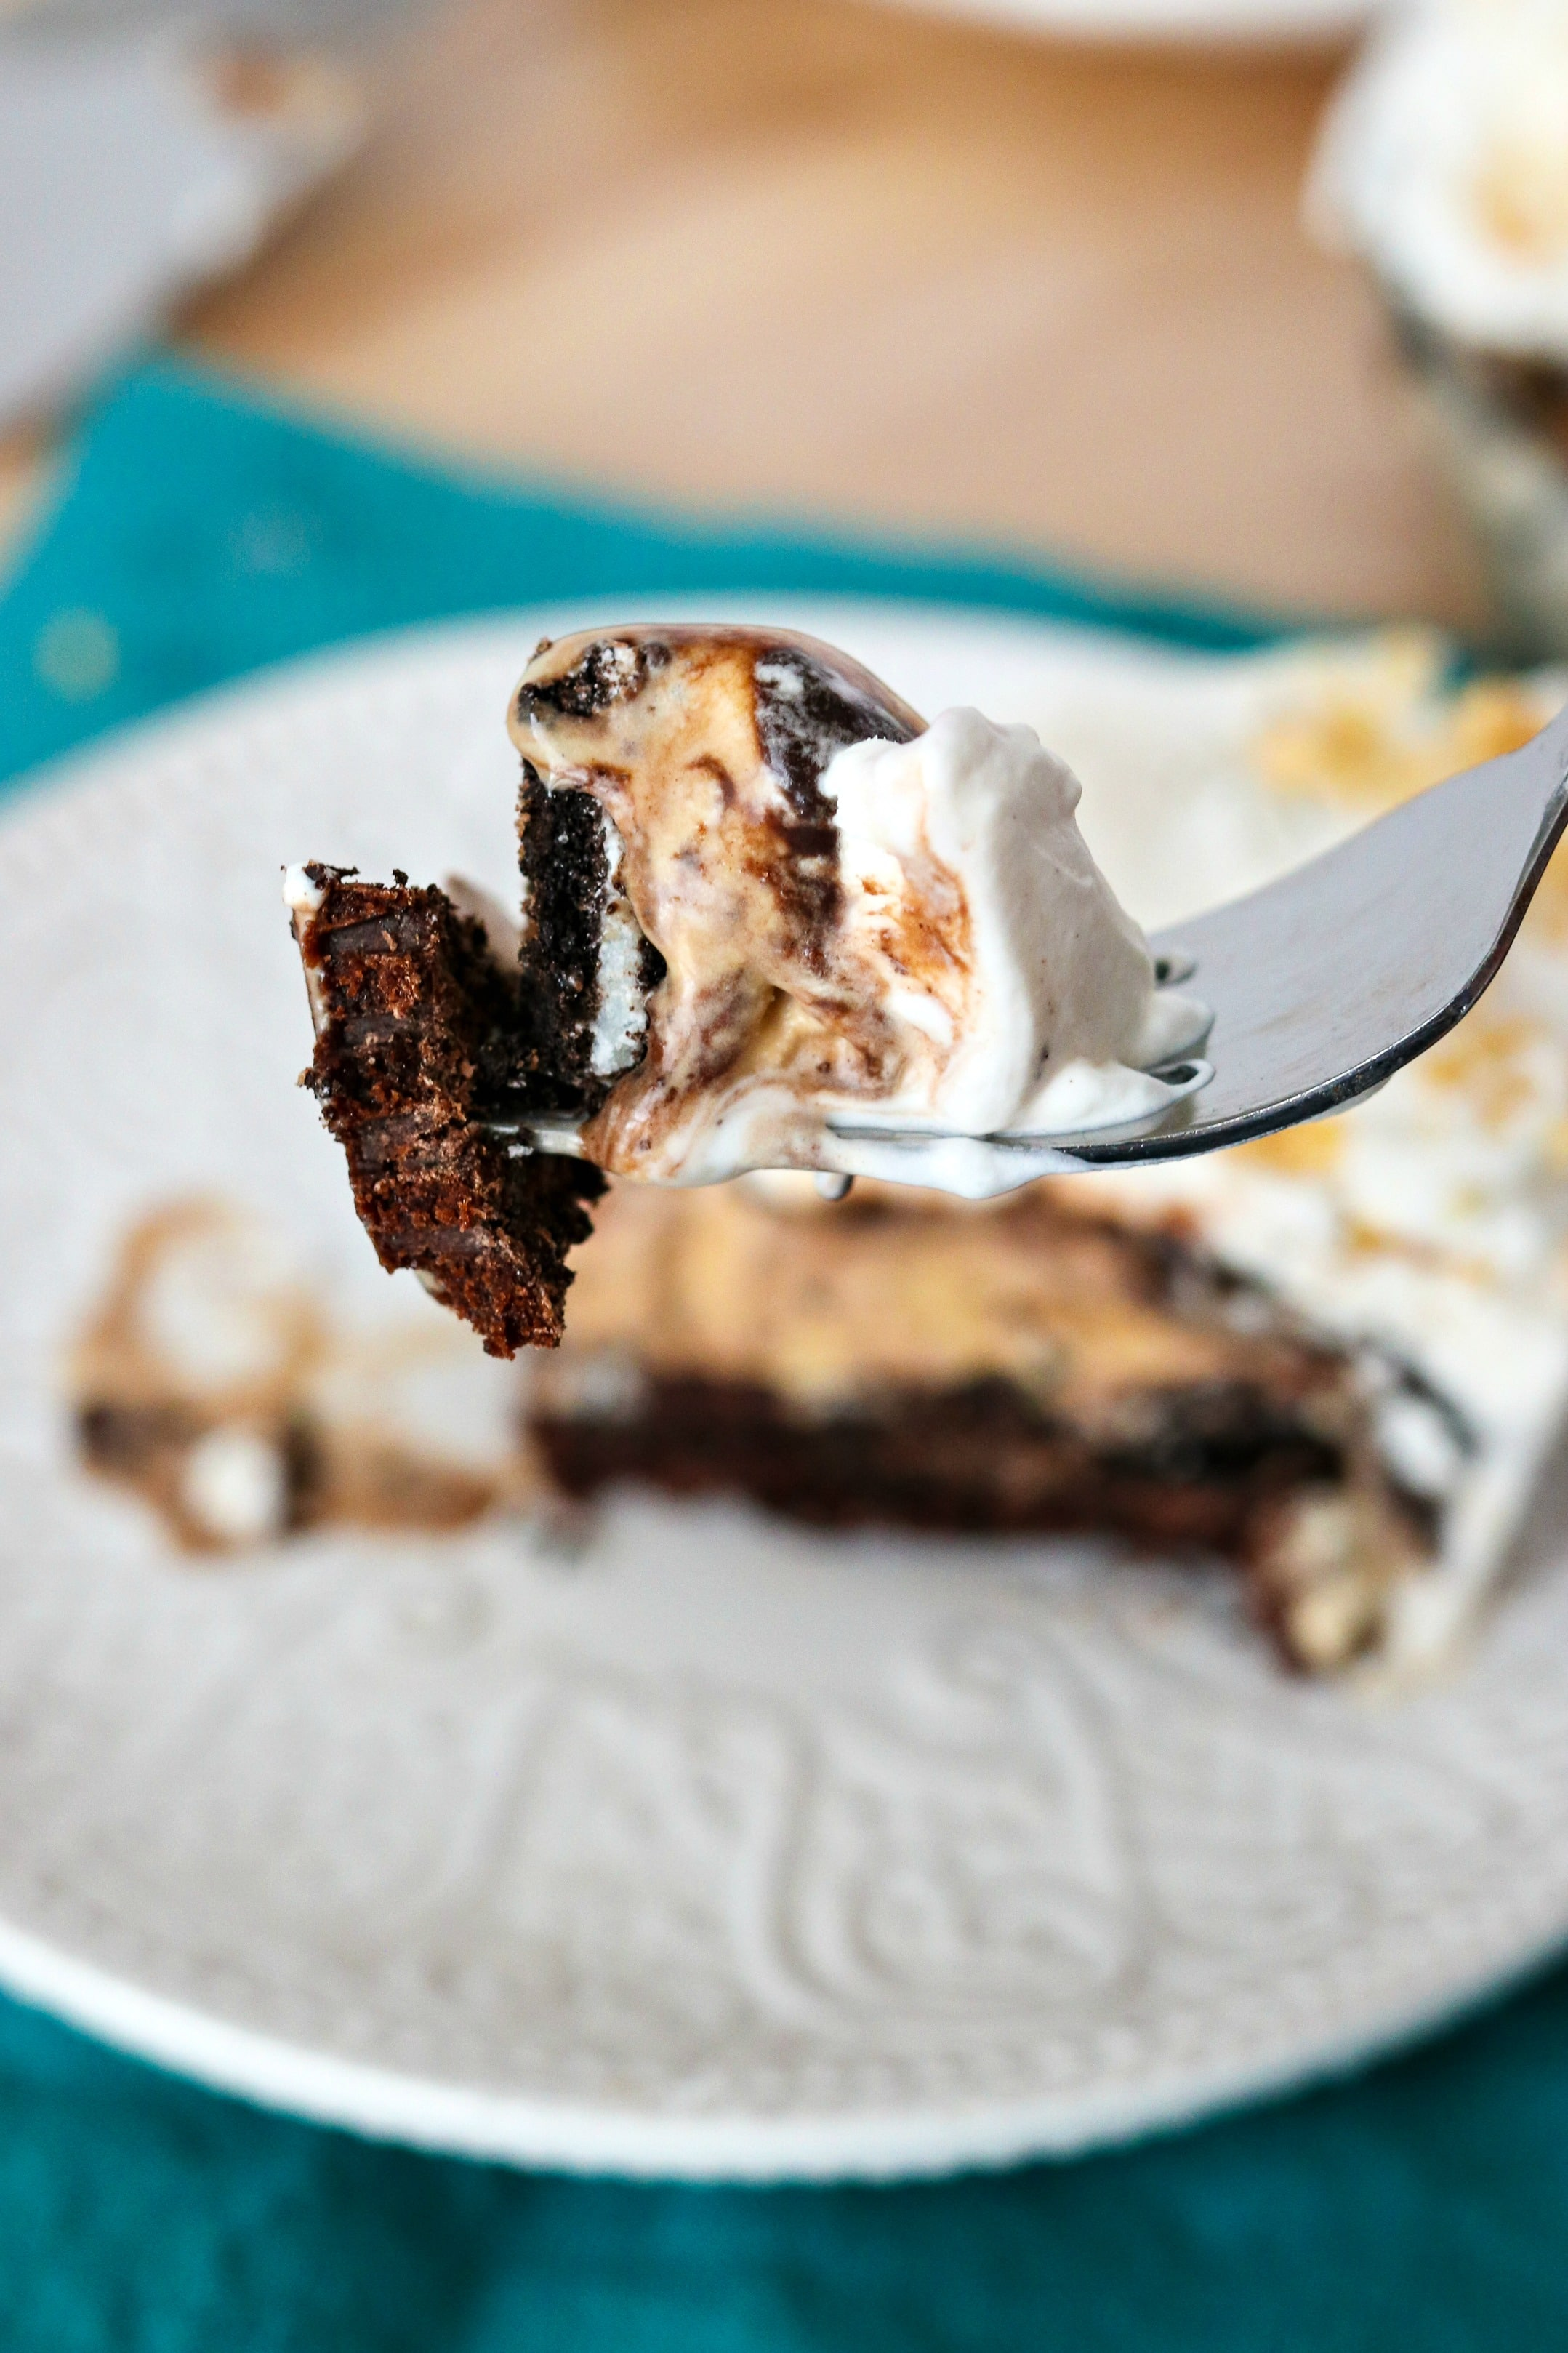 The Ultimate Brownie Sundae pie - This brownie sundae pie is oh so decadent but worth every bite! Made with a brownie bottom, topped with Oreos, your favorite ice cream, hot fudge, whipped cream and a cherry. You're gonna want this pie for your next birthday!